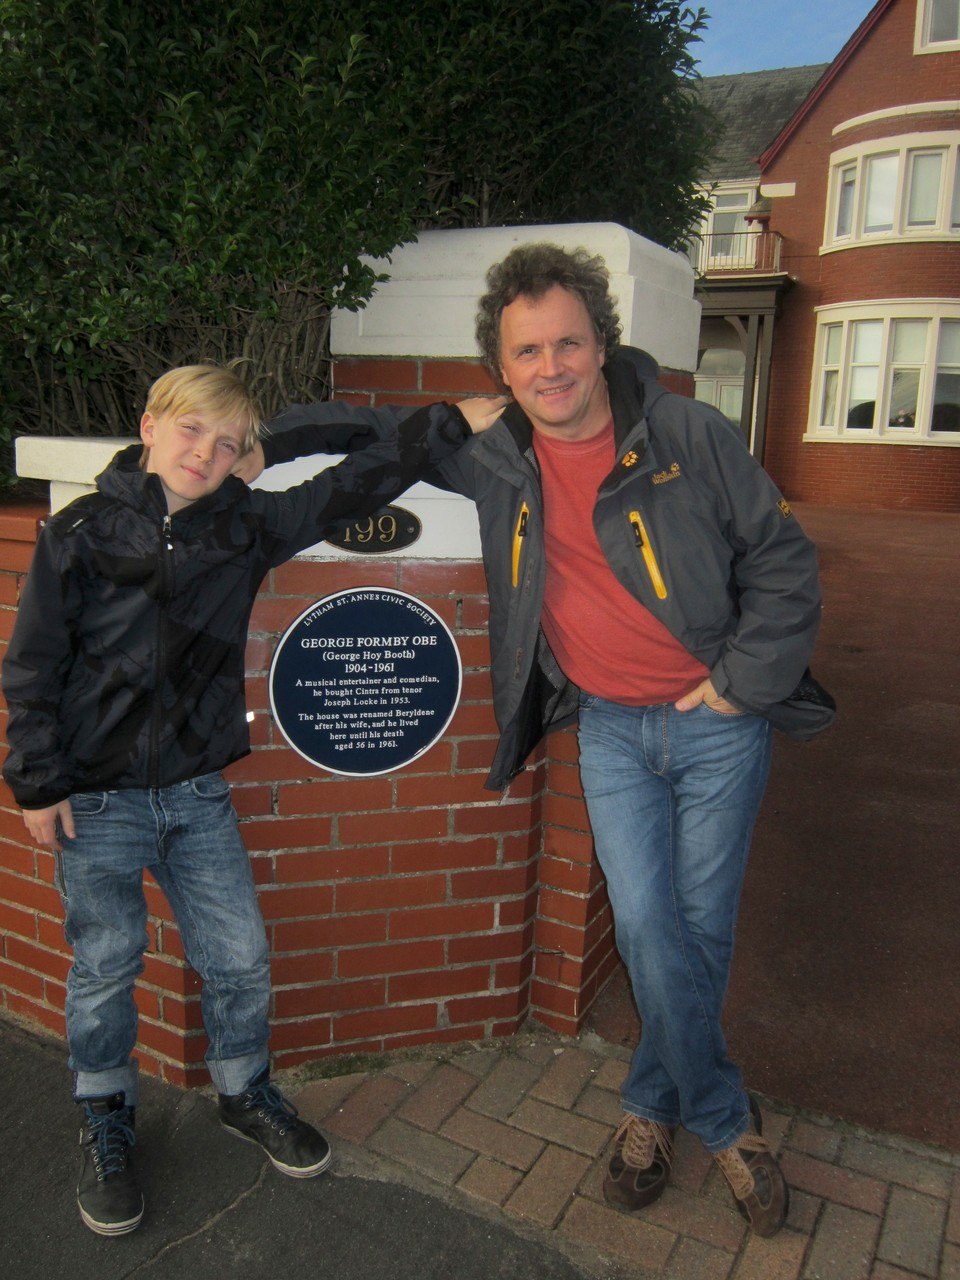 vor George Formbey´s Haus in Blackpool